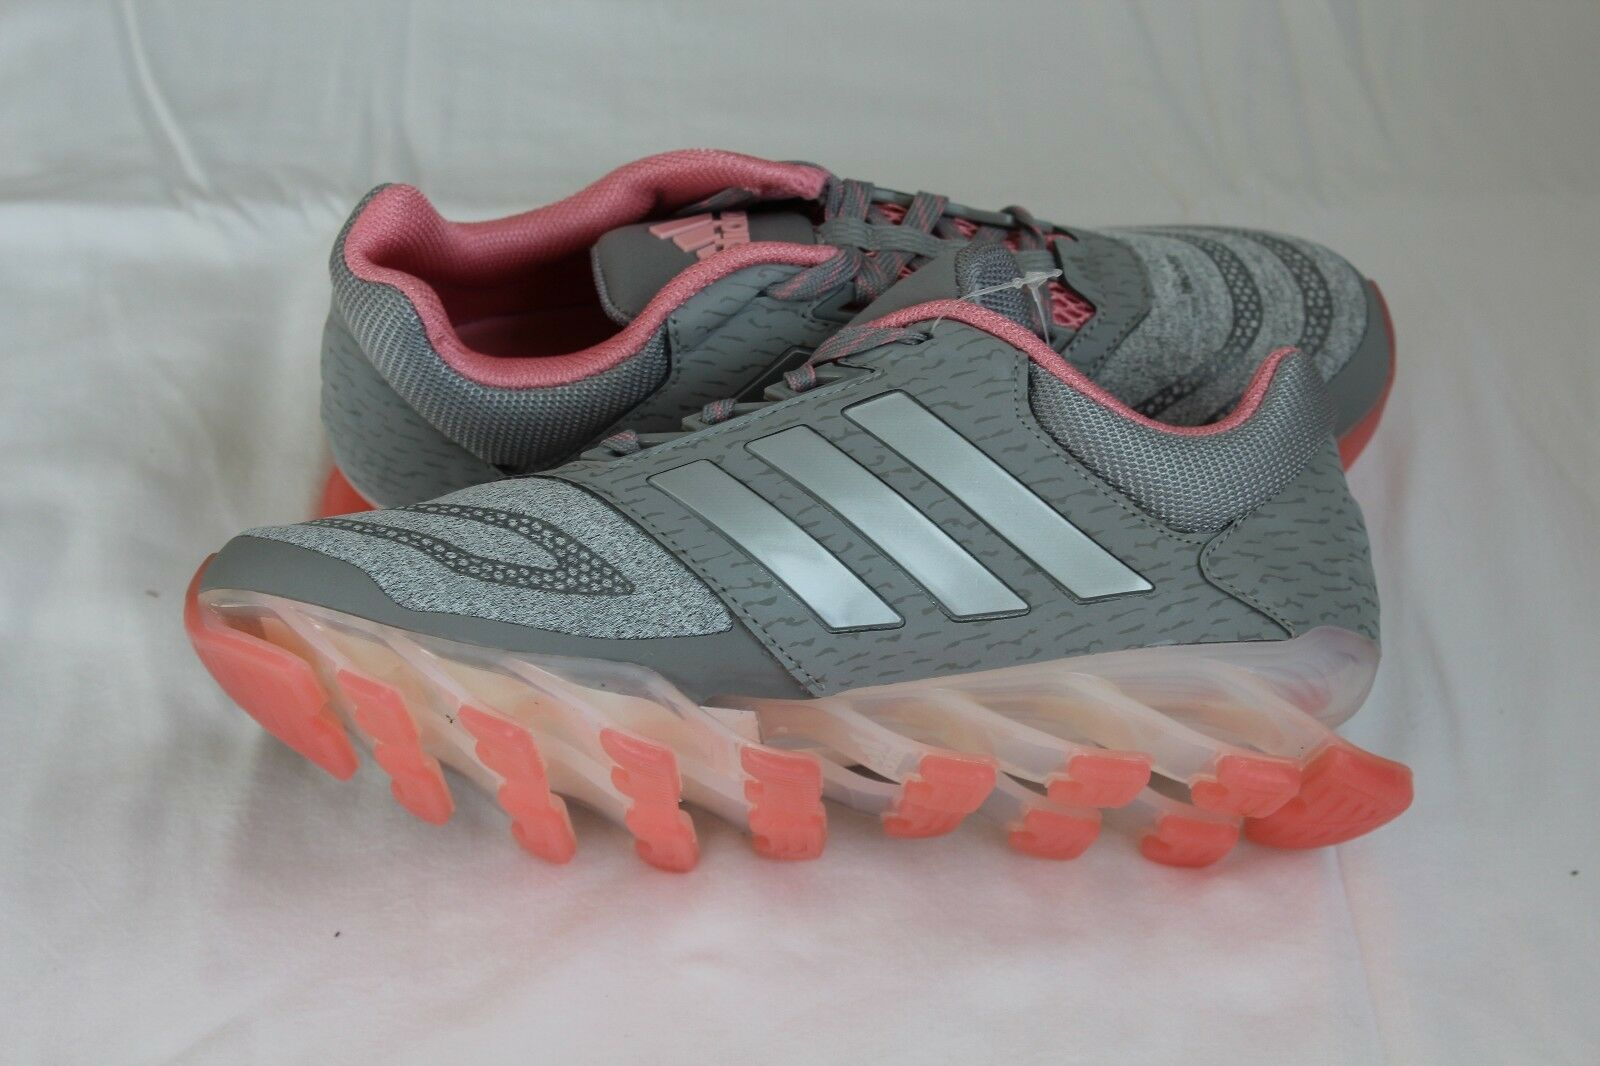 ADIDAS LADIES SPRINGBLADE DRIVE 2 TRAINERS UK 3.5 - 6